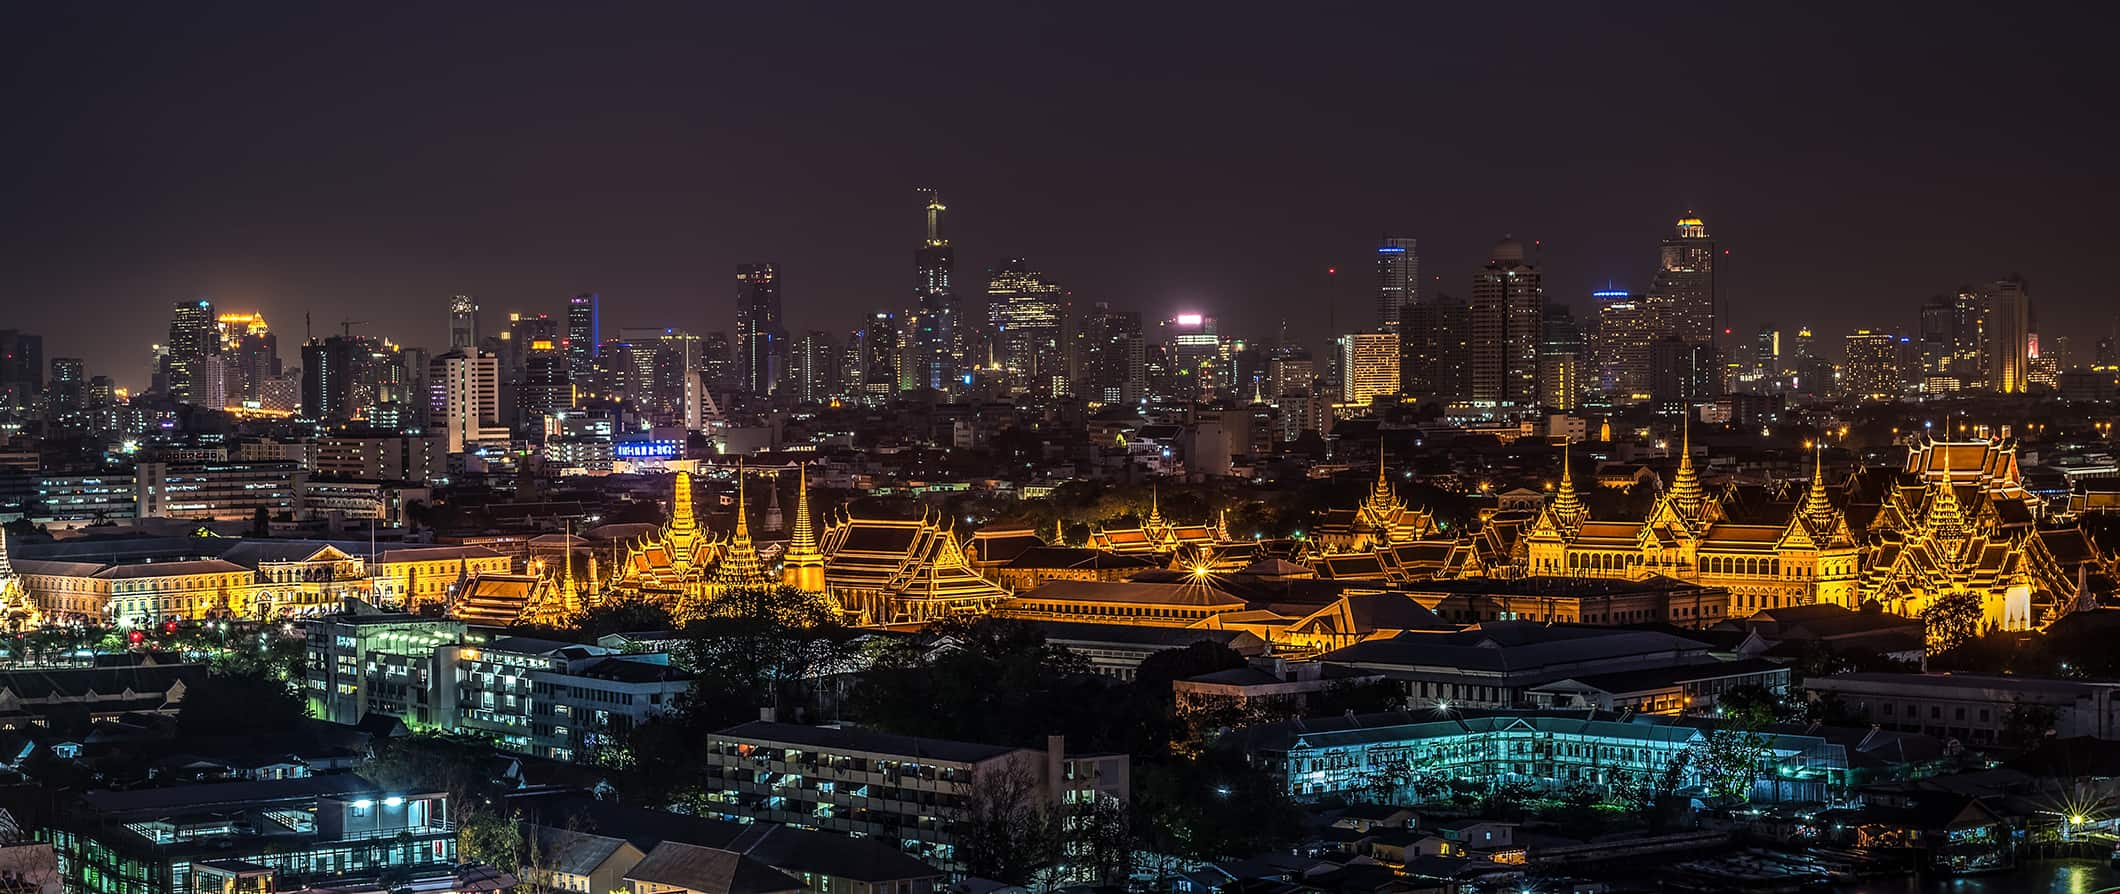 a night scene from Bangkok, Thailand